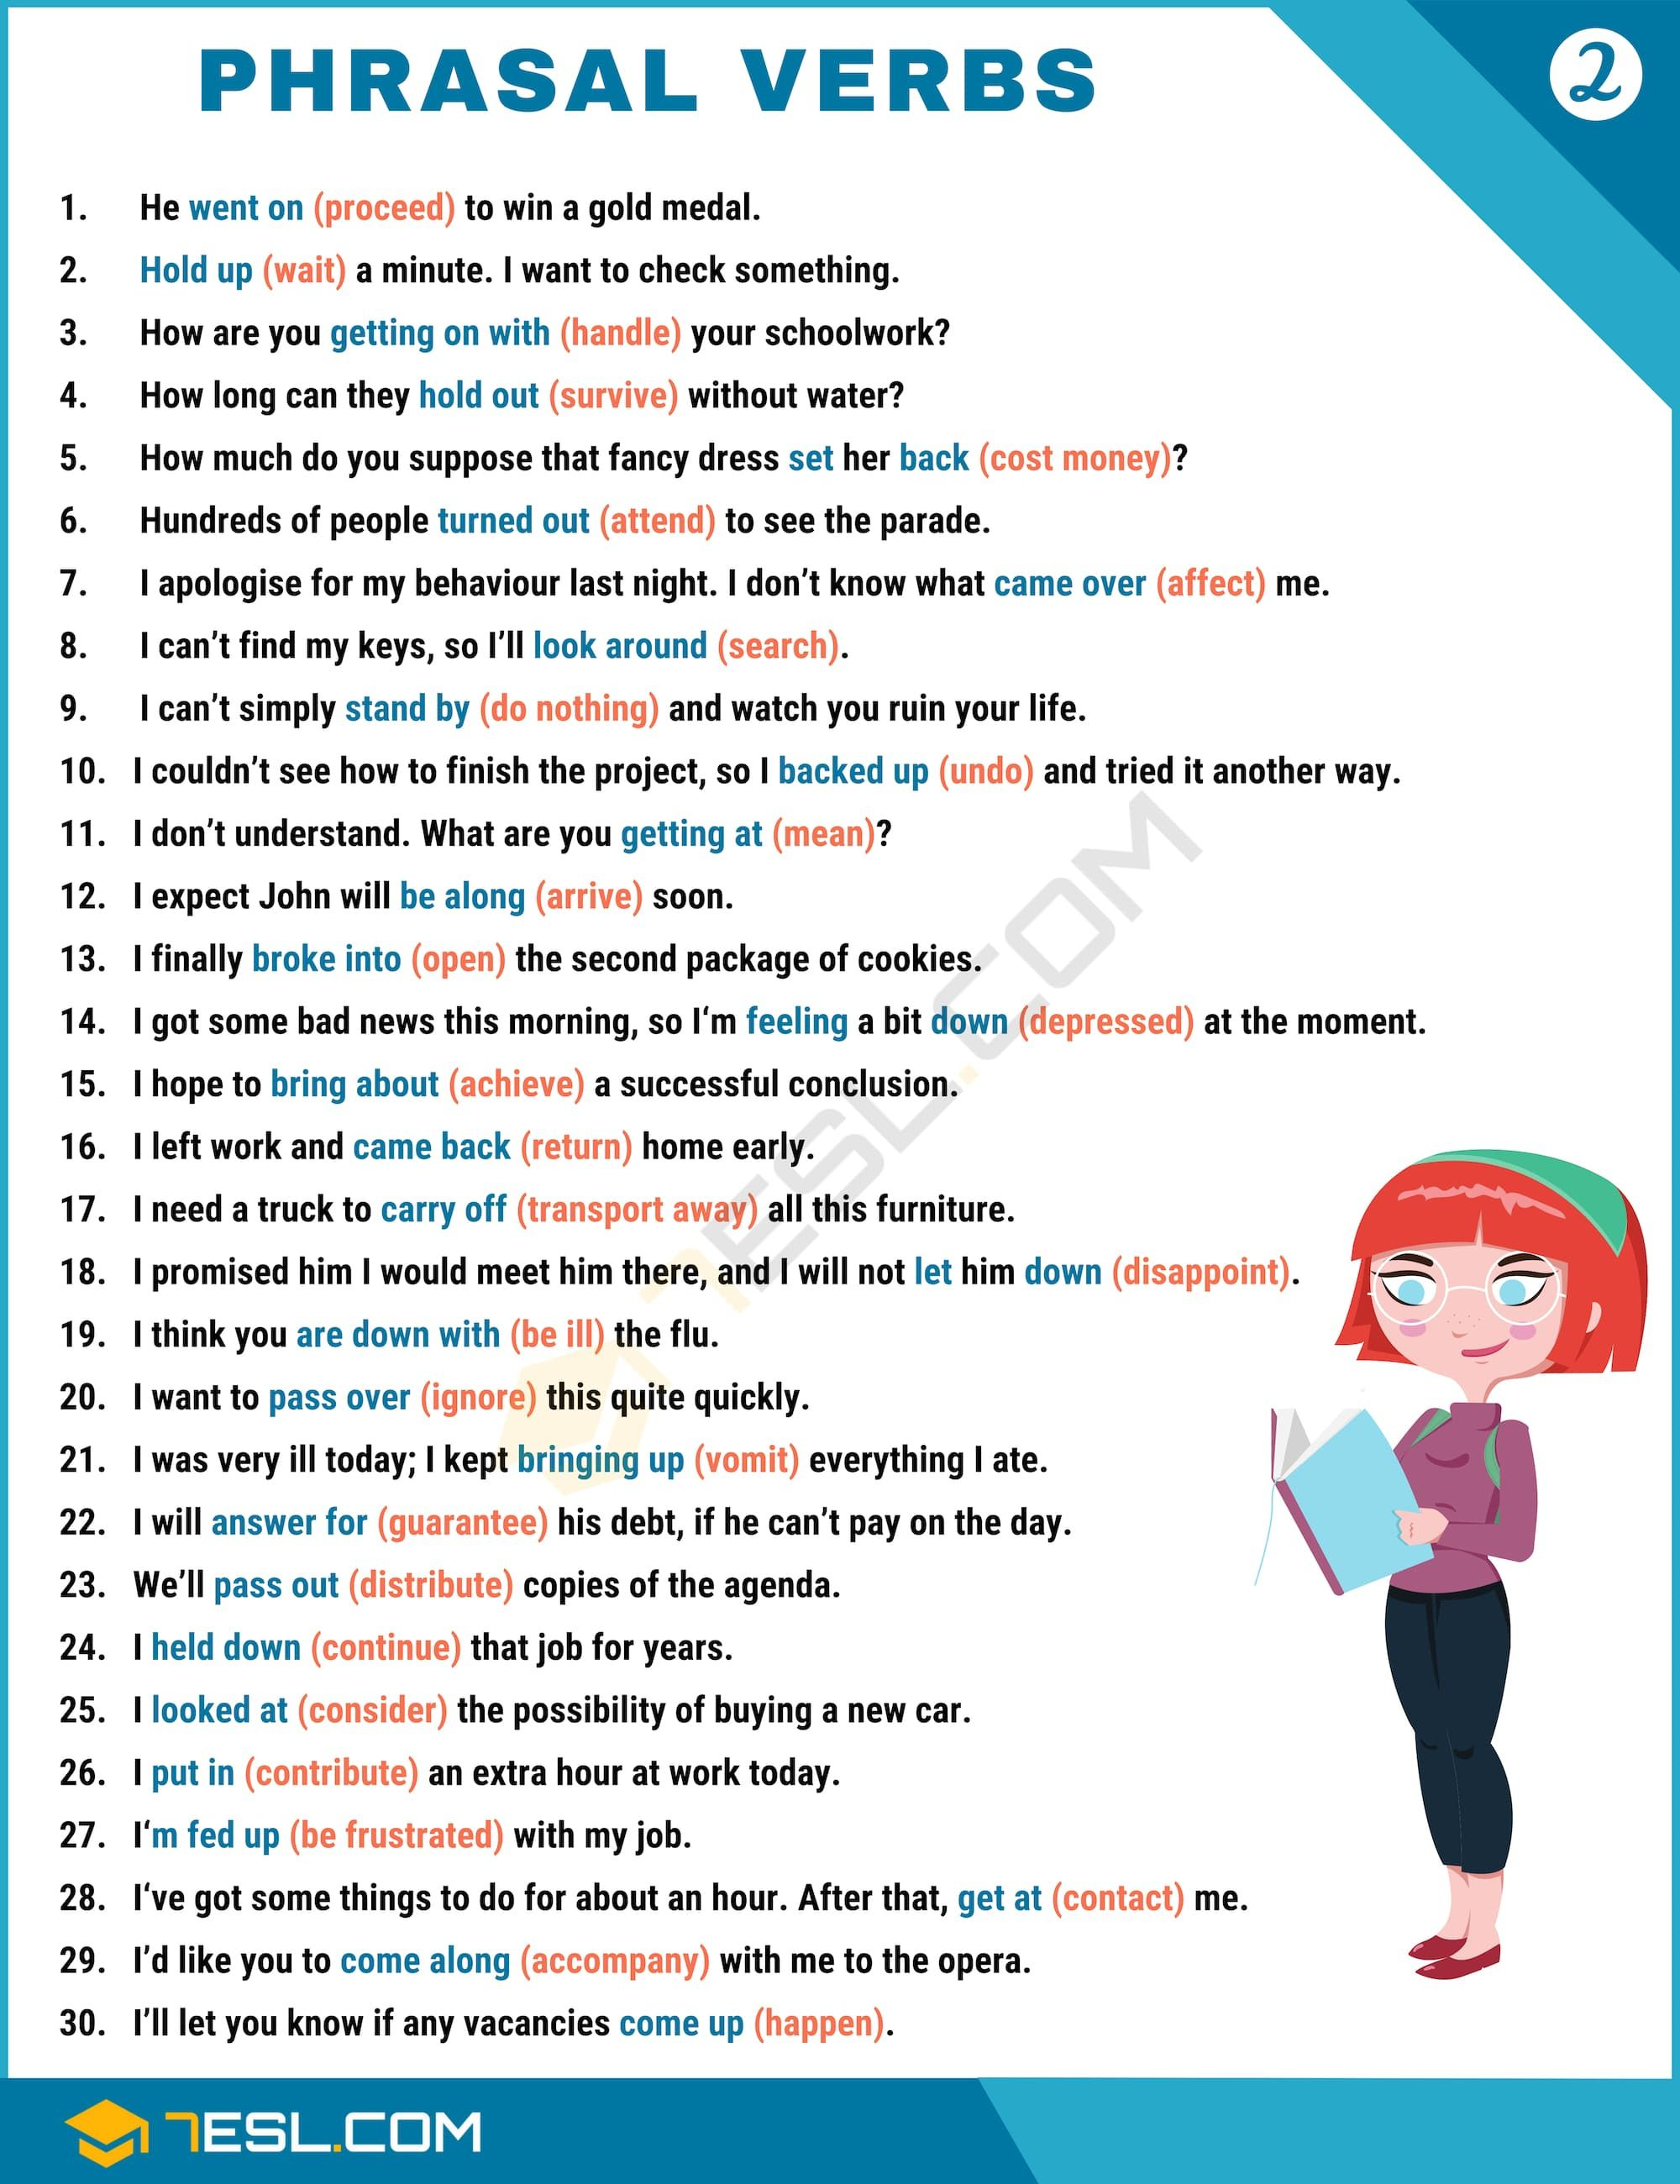 2000+ Common Phrasal Verbs List from AZ Aprender ingles